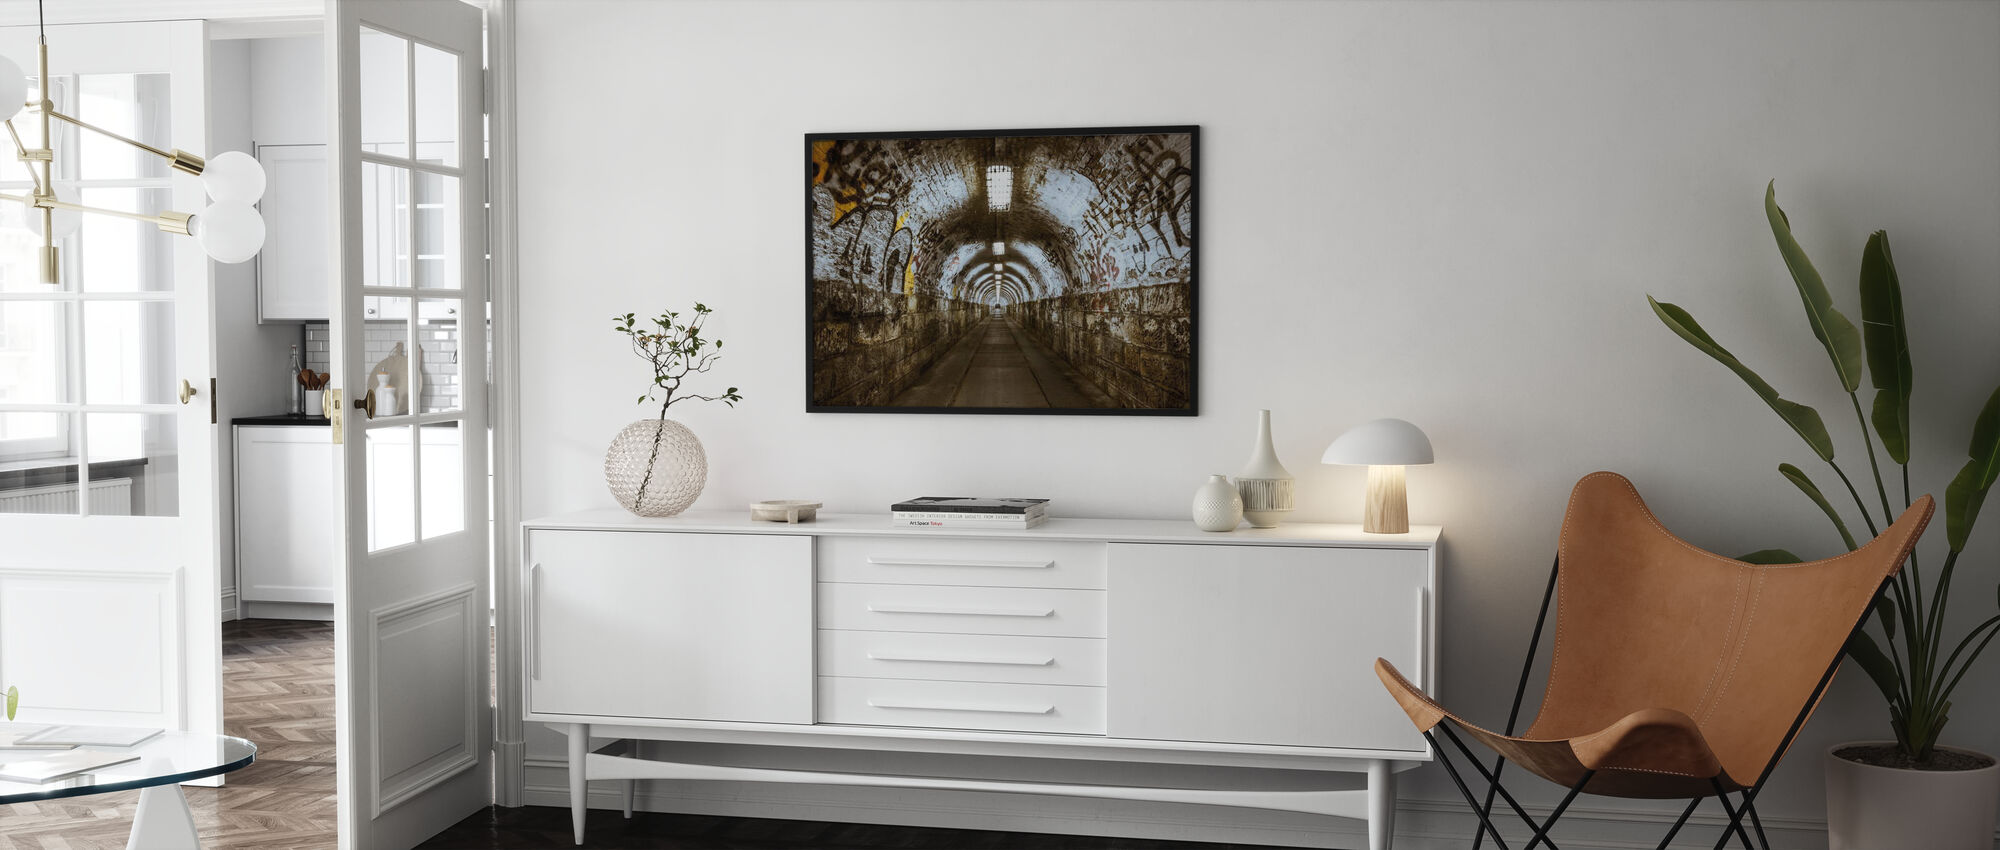 Underground Tunnel - Poster - Living Room